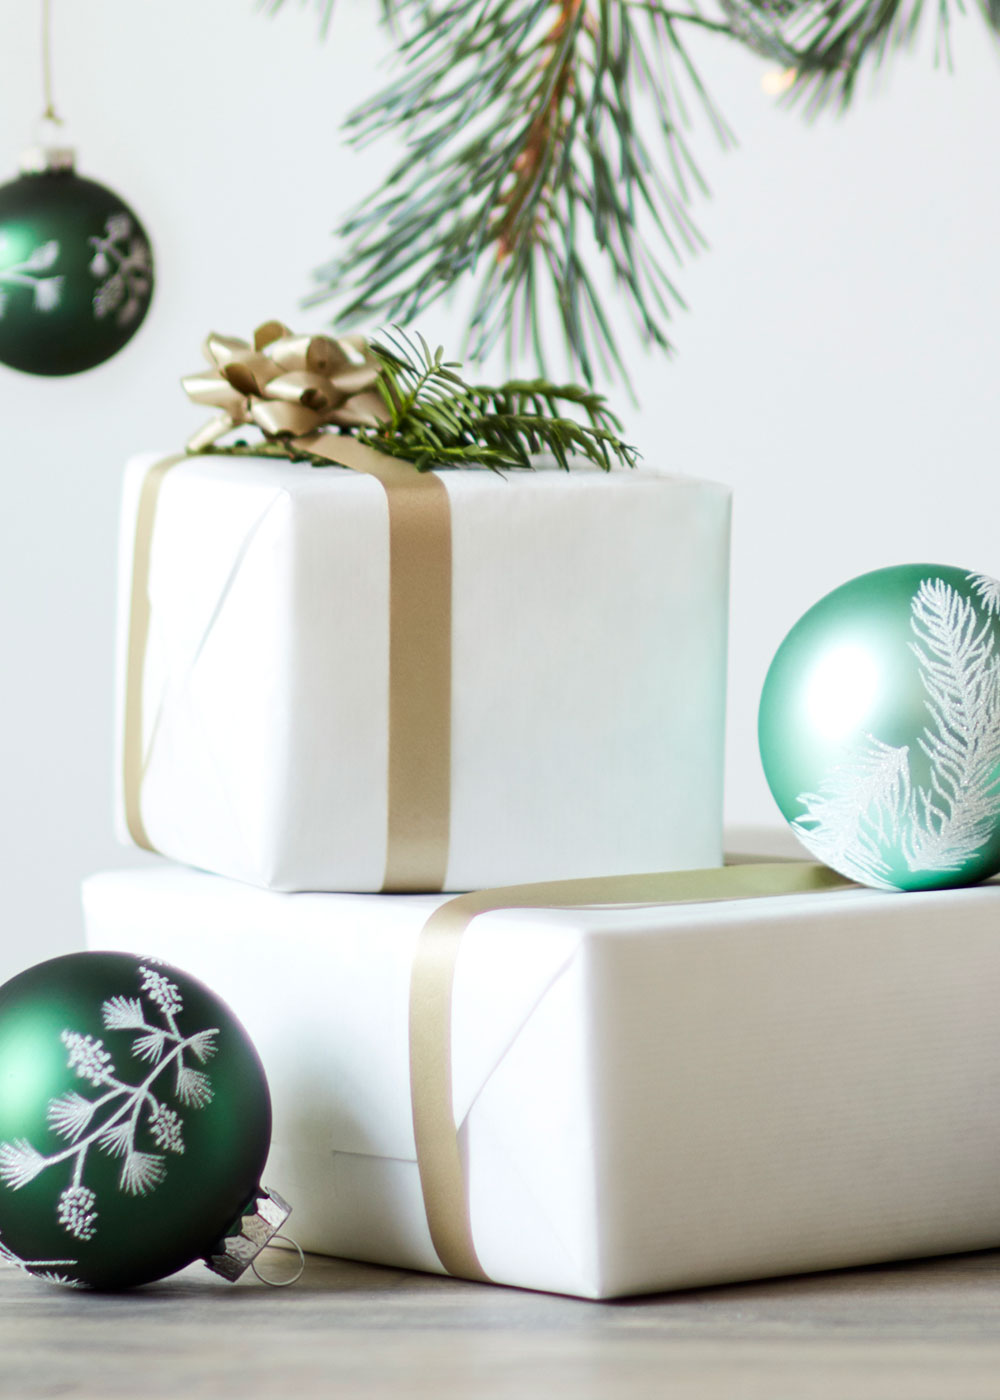 Best Places For Budget Christmas Decorations - Apartment Number 4